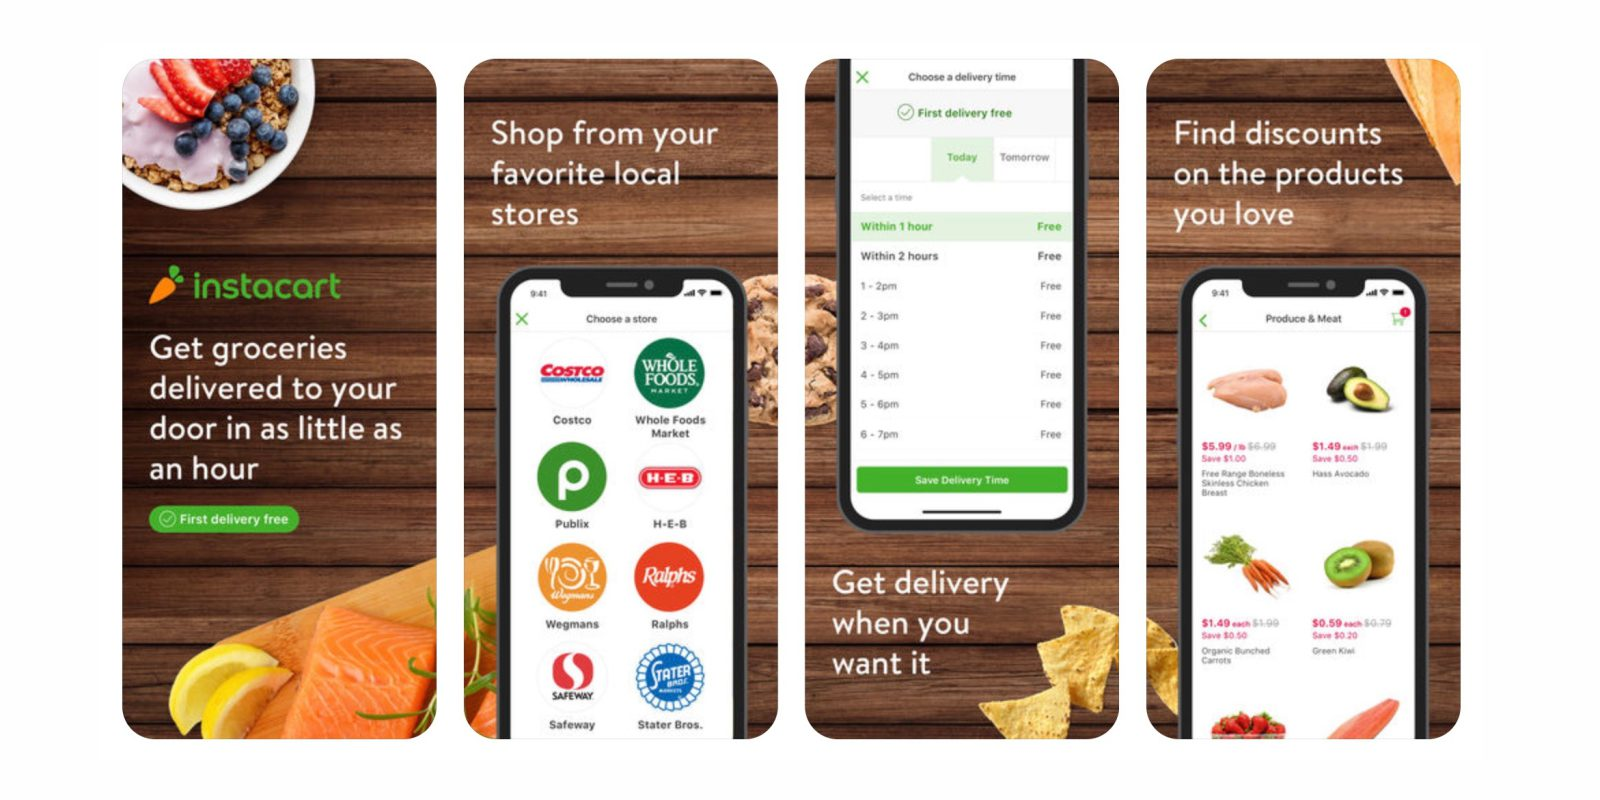 This week's Apple Pay promo brings back free Instacart grocery delivery latest-apple-pay-promotion-offering-free-grocery-delivery-with-instacart